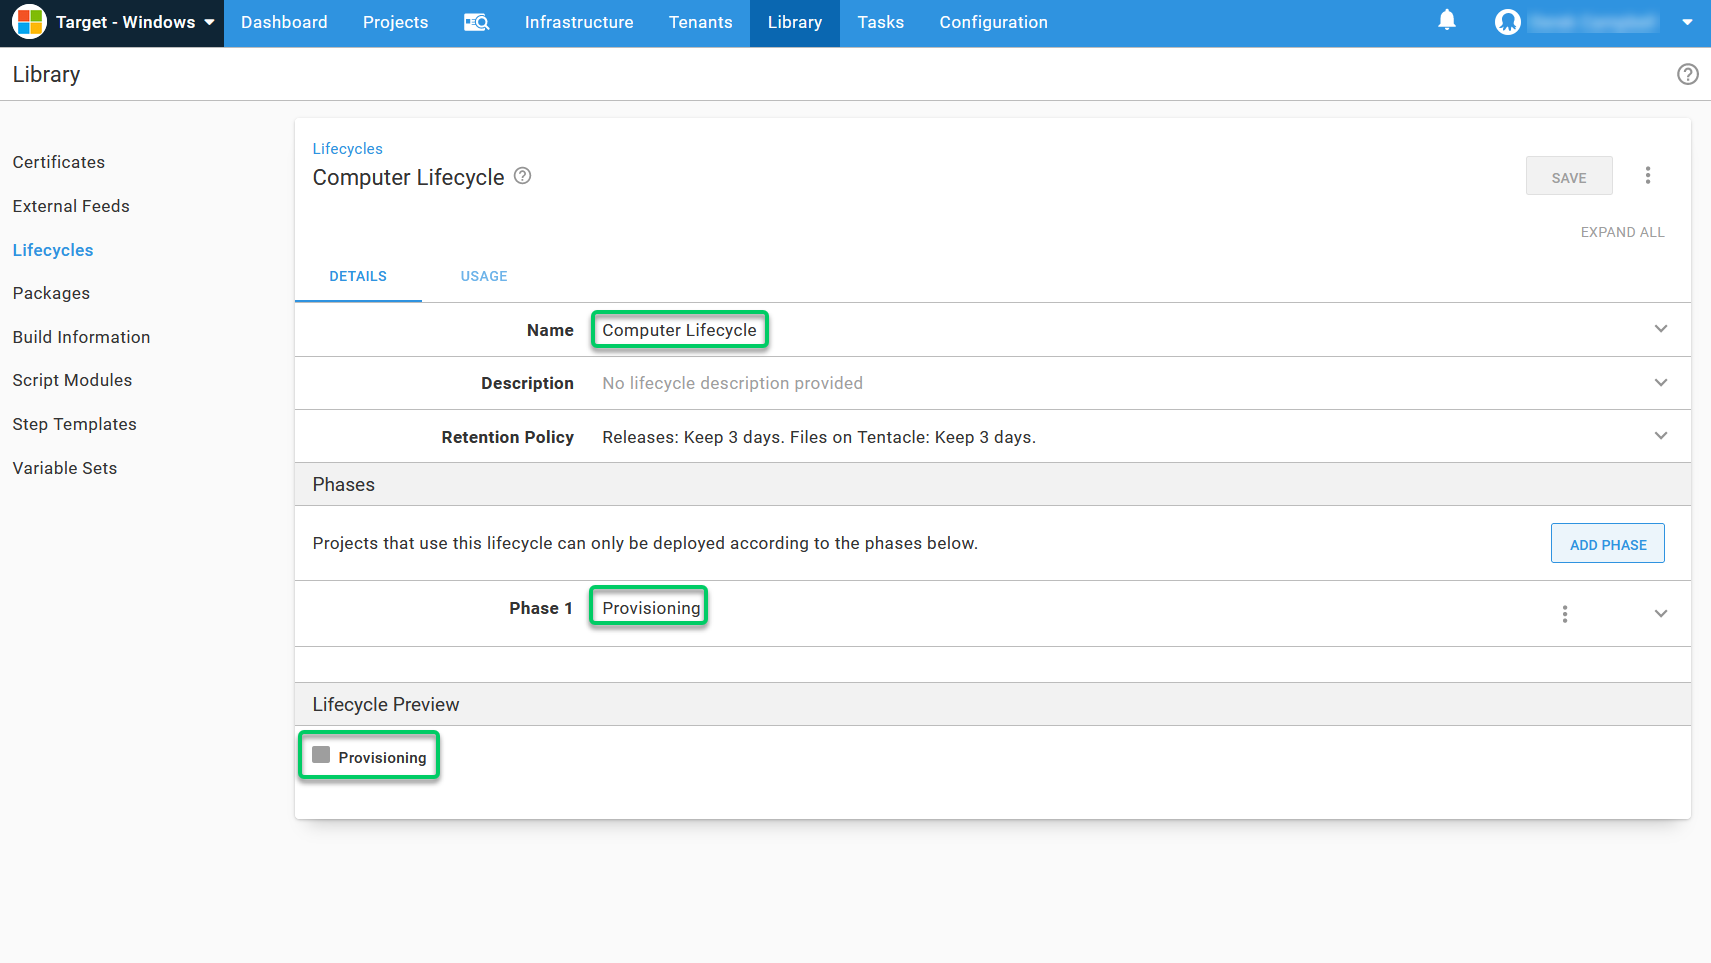 Adding a Provisioning lifecycle